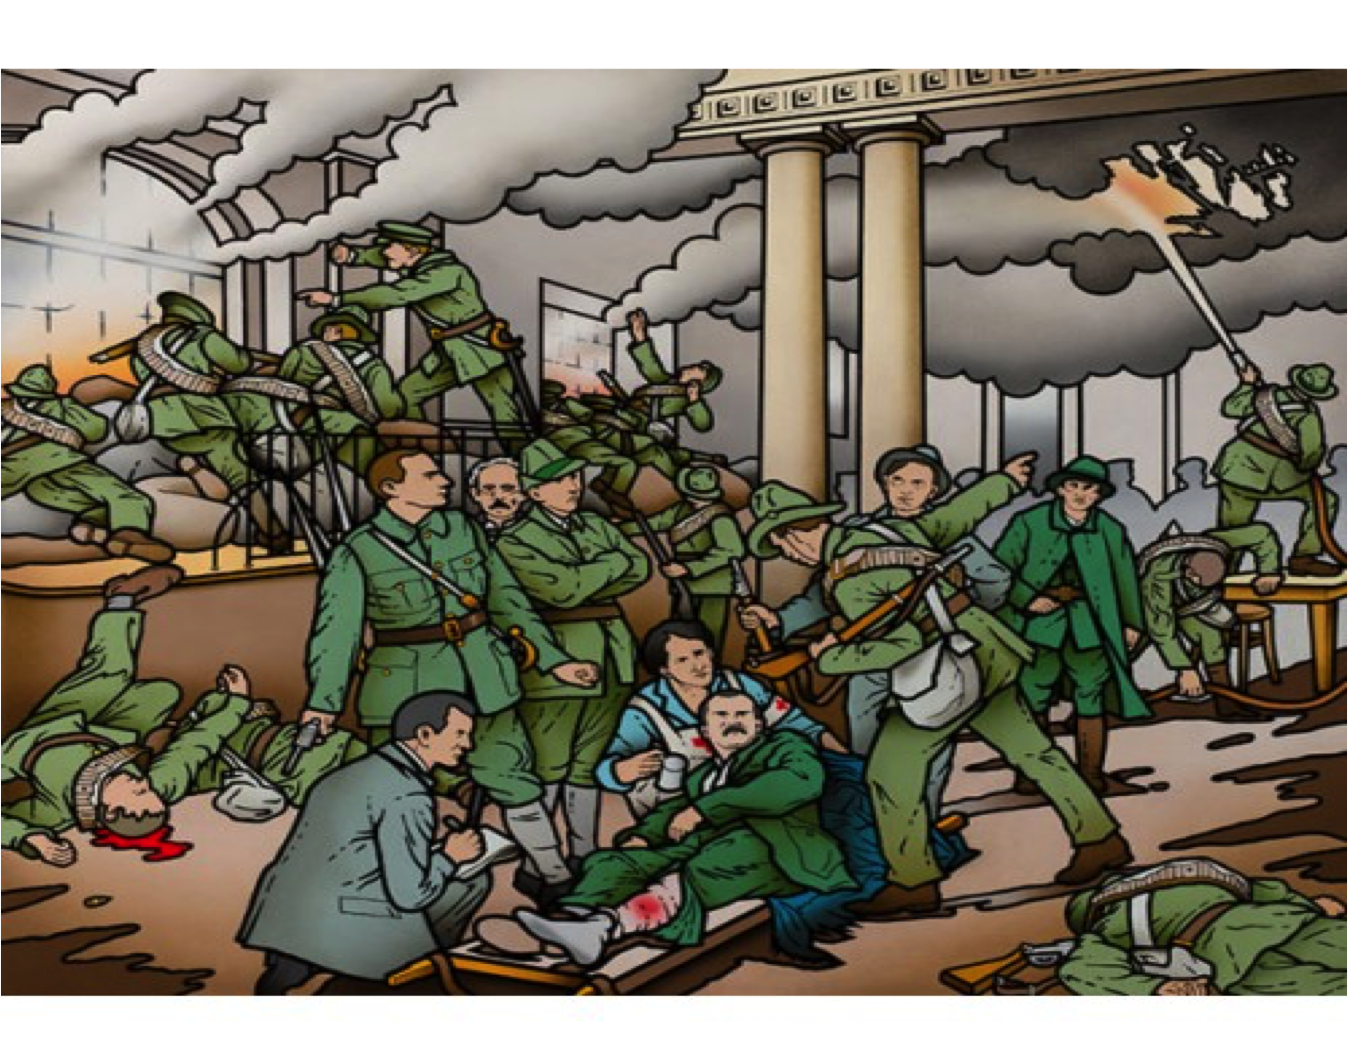 RobertBallagh